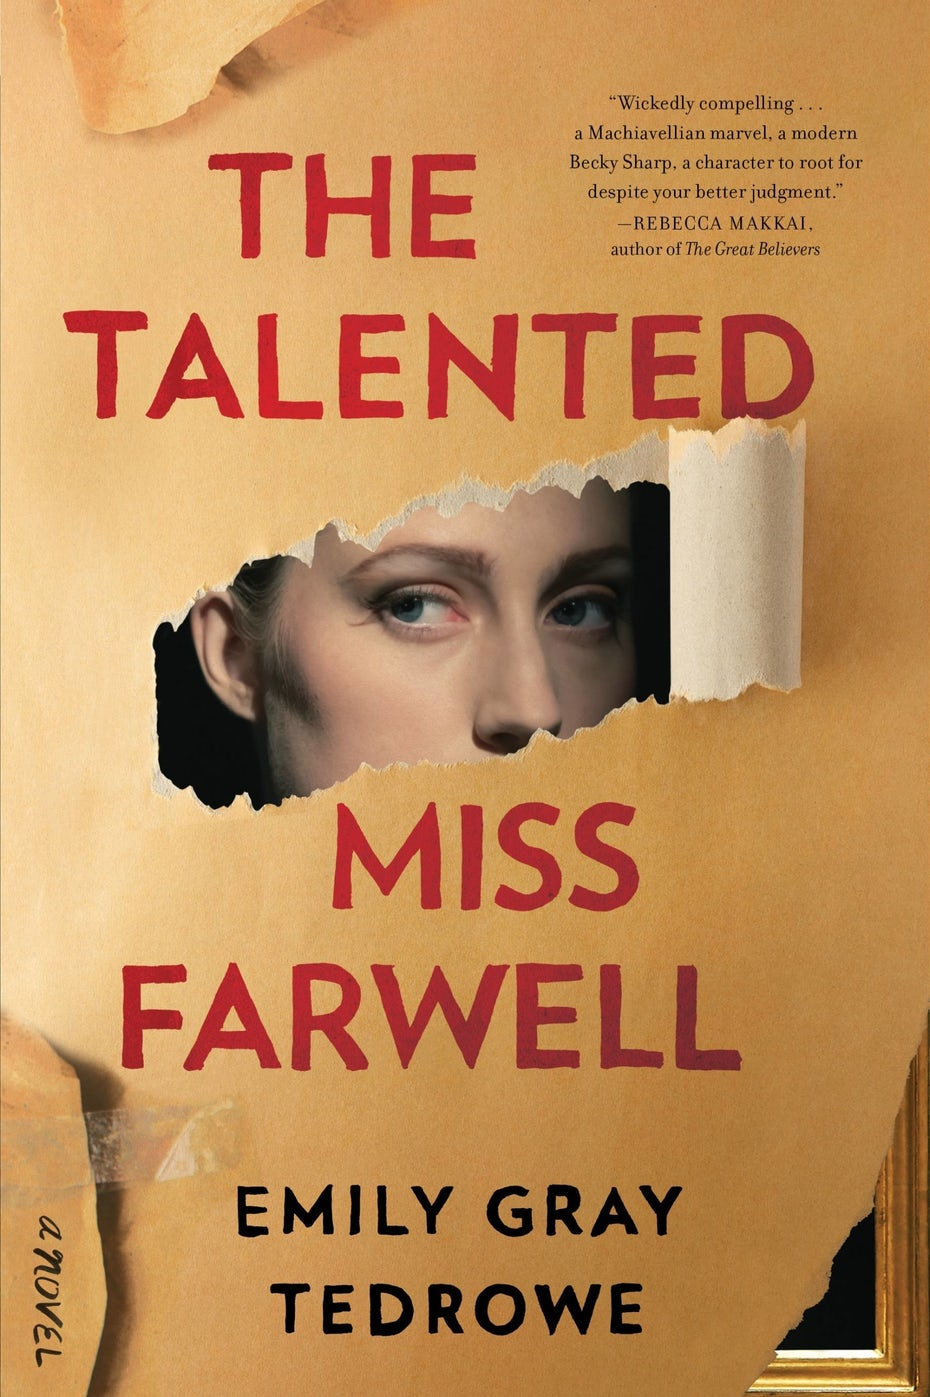 book cover trends example: tan book cover with red text and a torn-away image revealing a woman's eyes